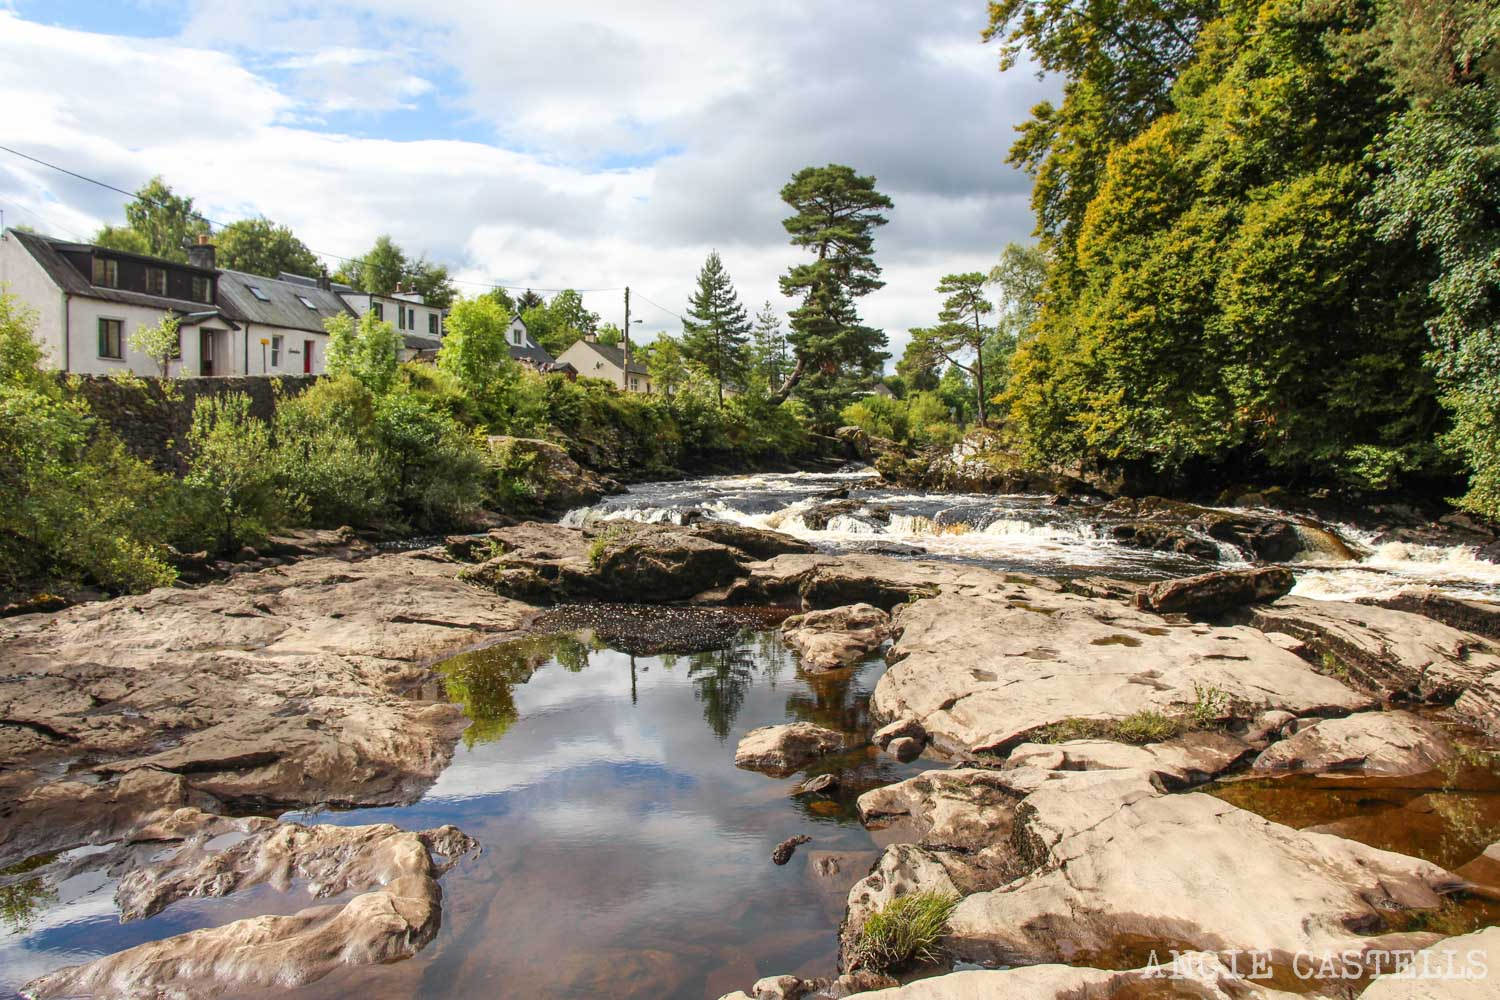 Ruta por las Highlands de Escocia: Killin y las Falls of Dochart